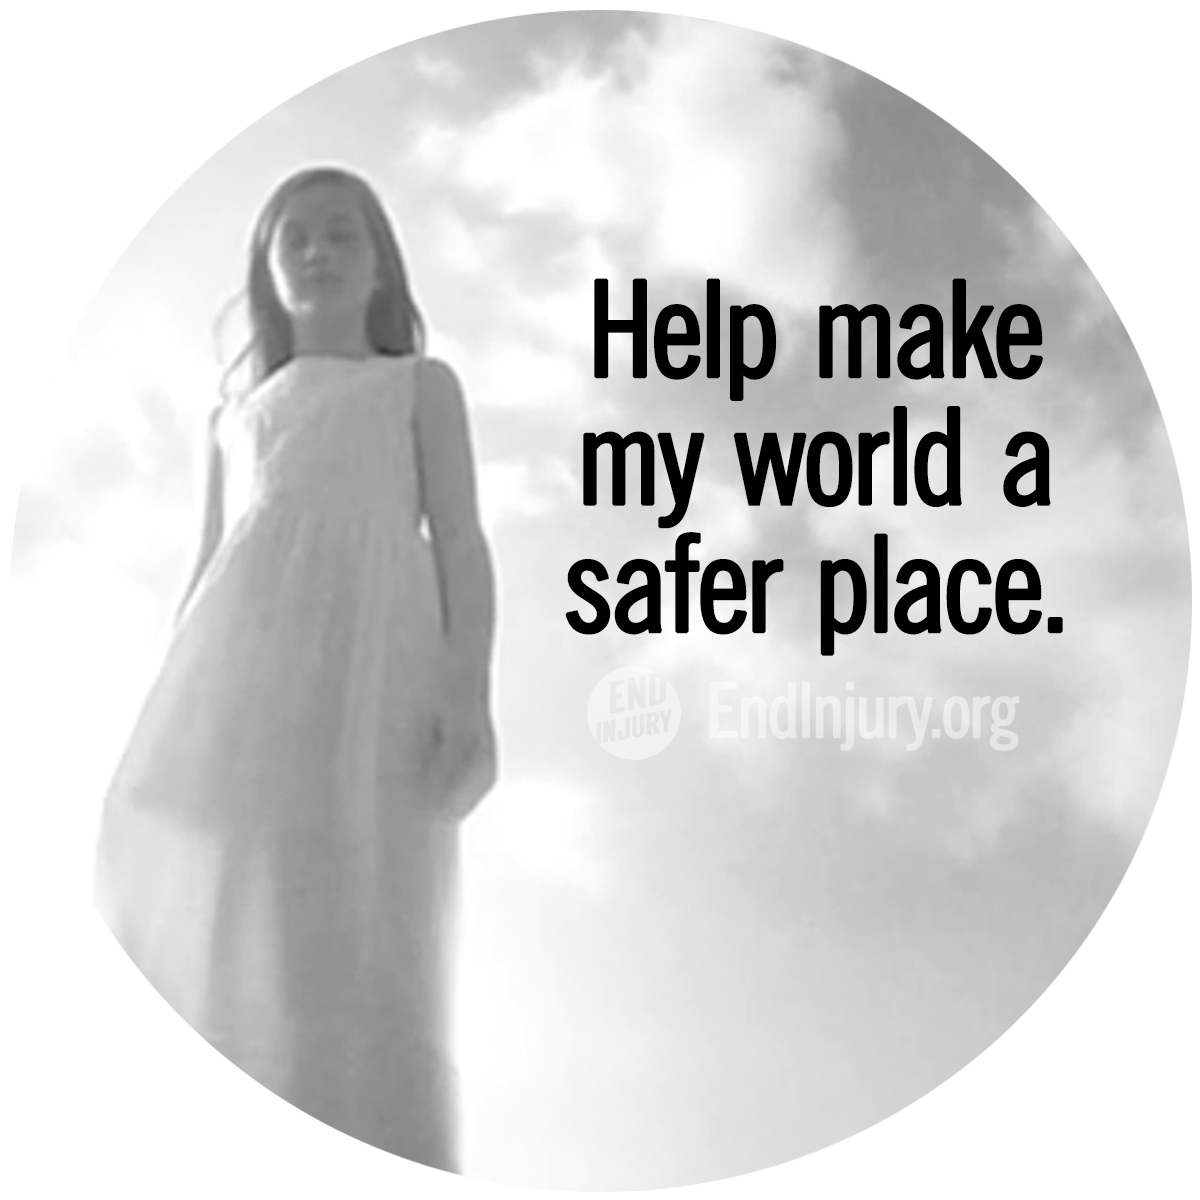 make-my-world-safer-quote-photo.png